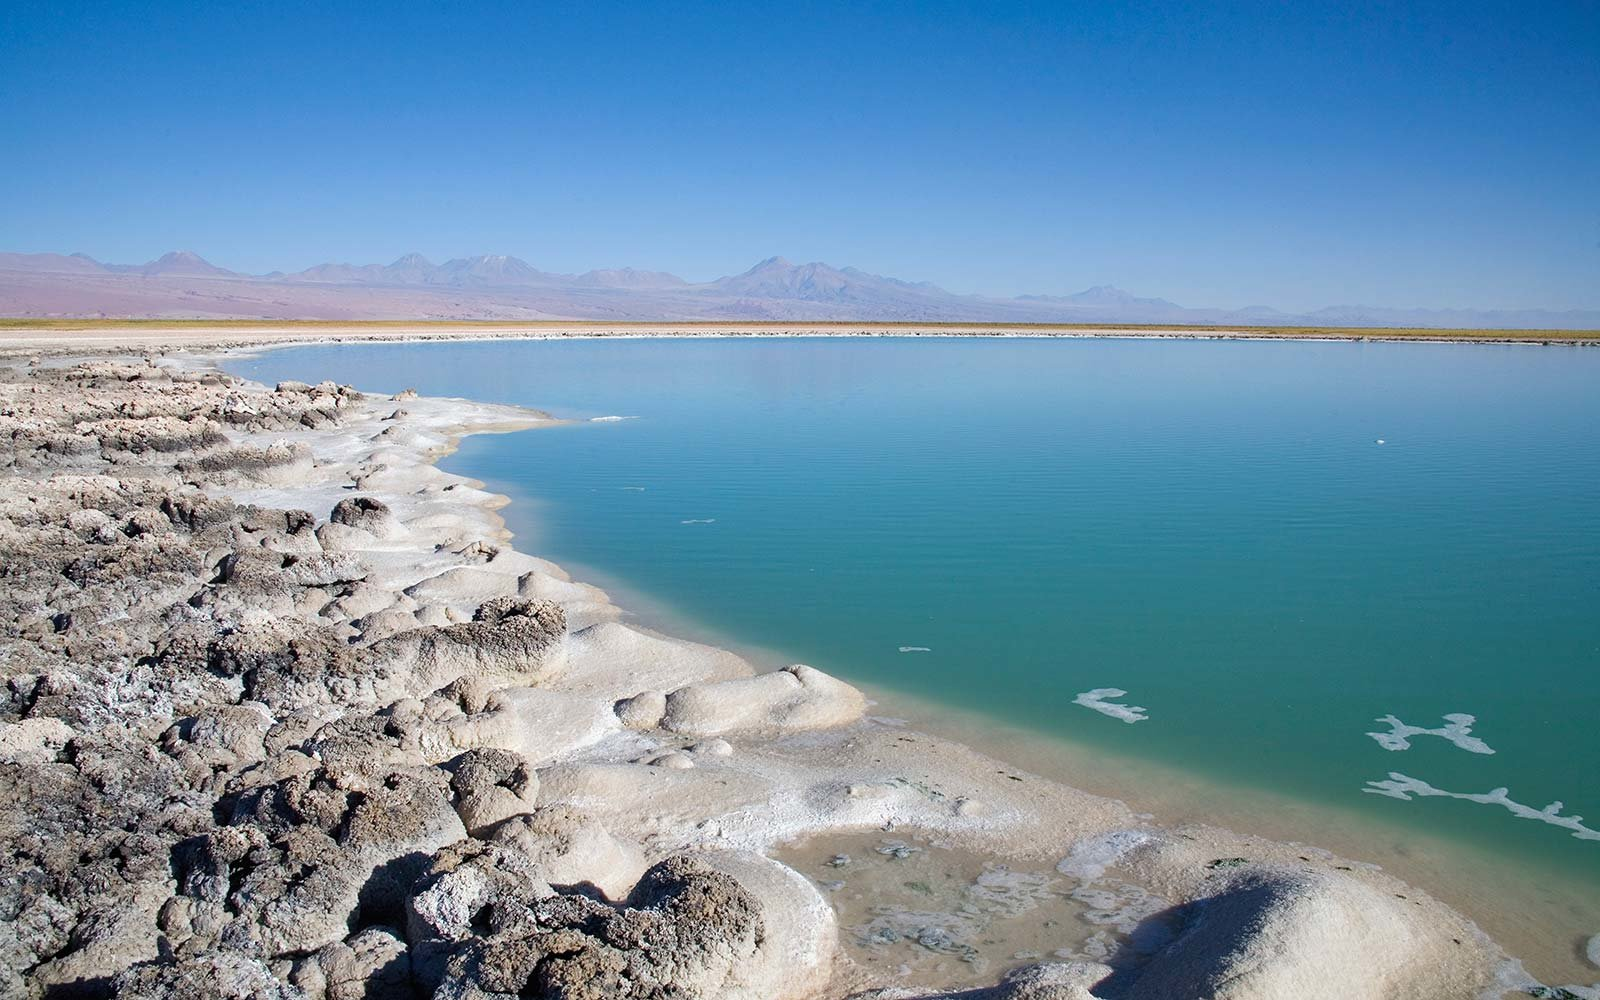 See a massive salt lake.